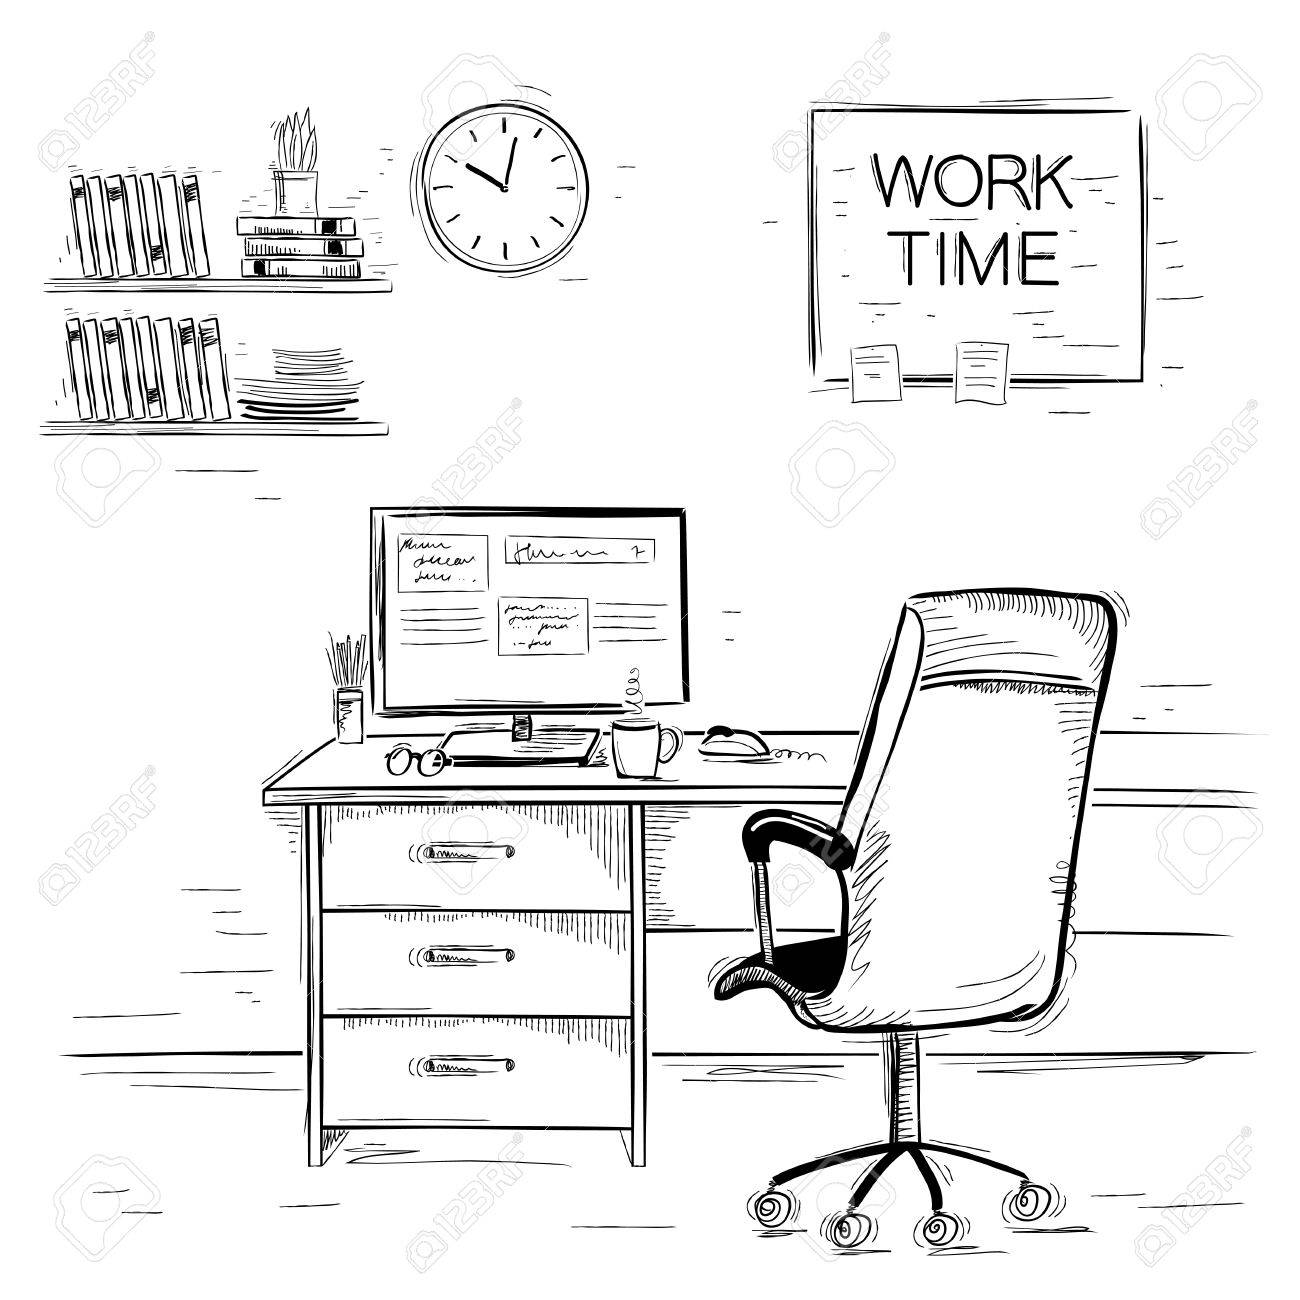 Office interior room.Sketchy illustration of work place on white - 57809874